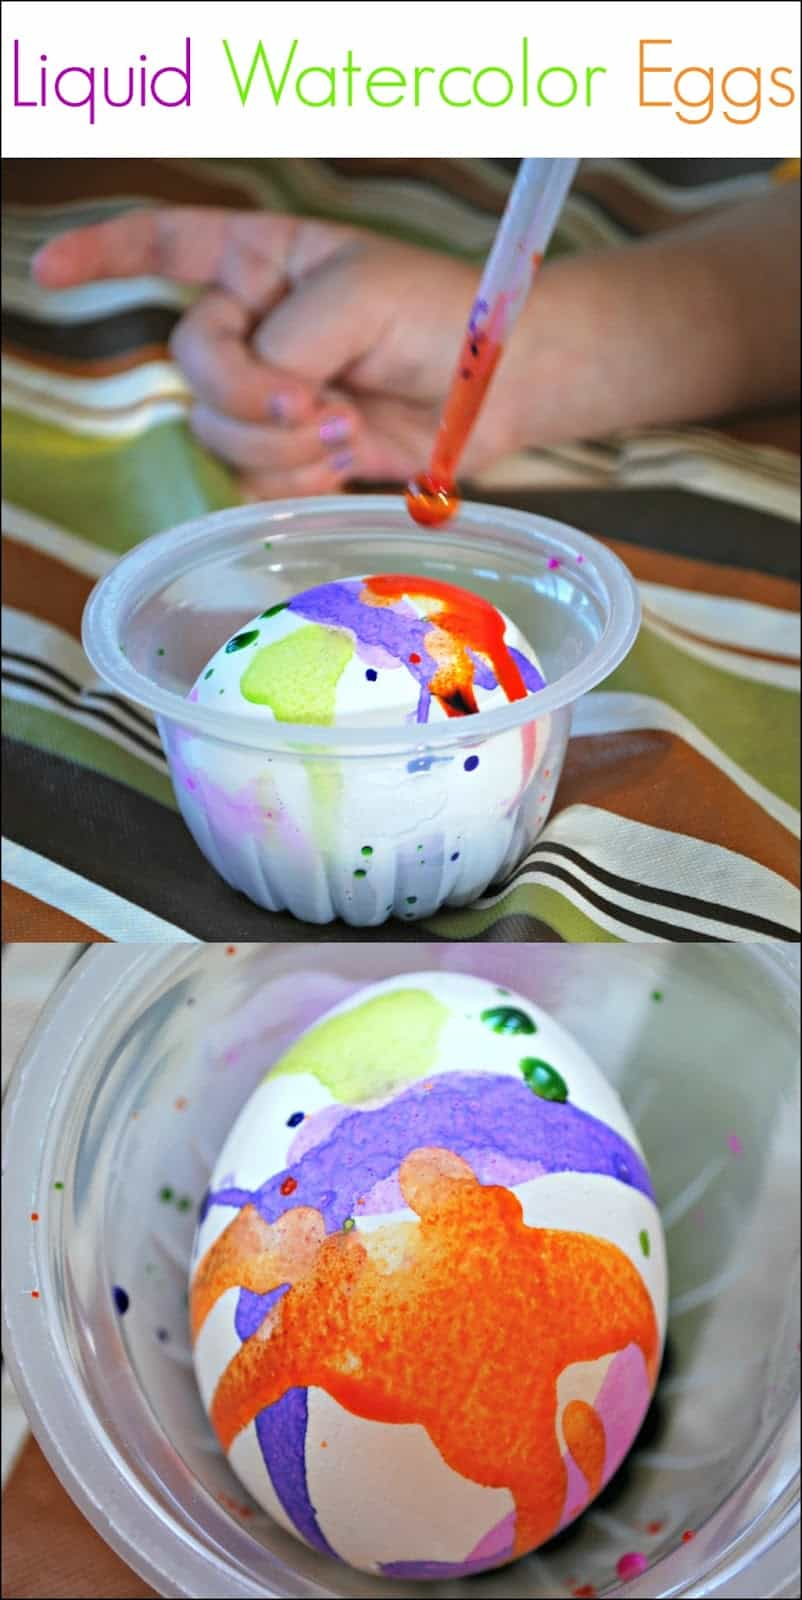 Liquid Watercolor Decorated Eggs - Using droppers and liquid watercolors to create vibrantly colored eggs.